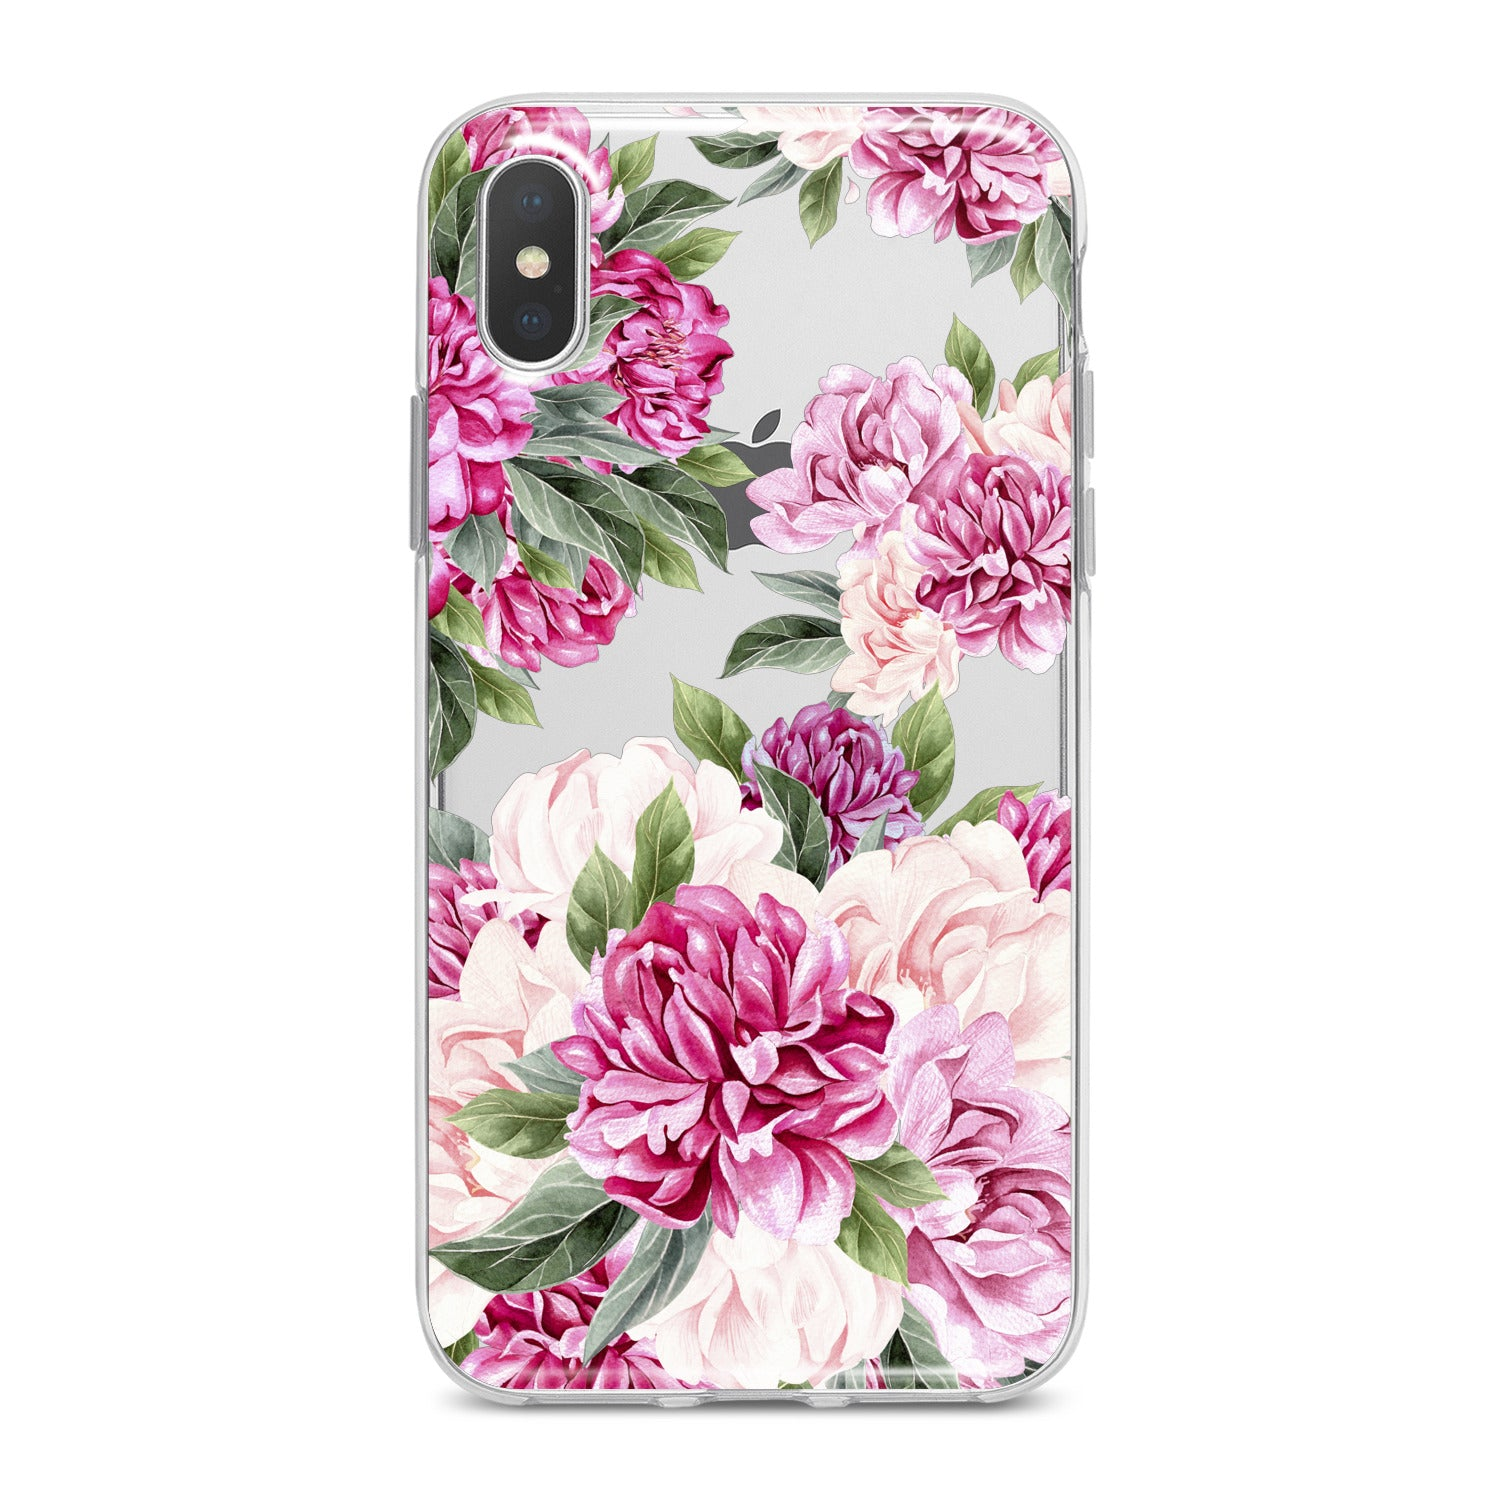 Lex Altern Awesome Peonies Pattern Phone Case for your iPhone & Android phone.